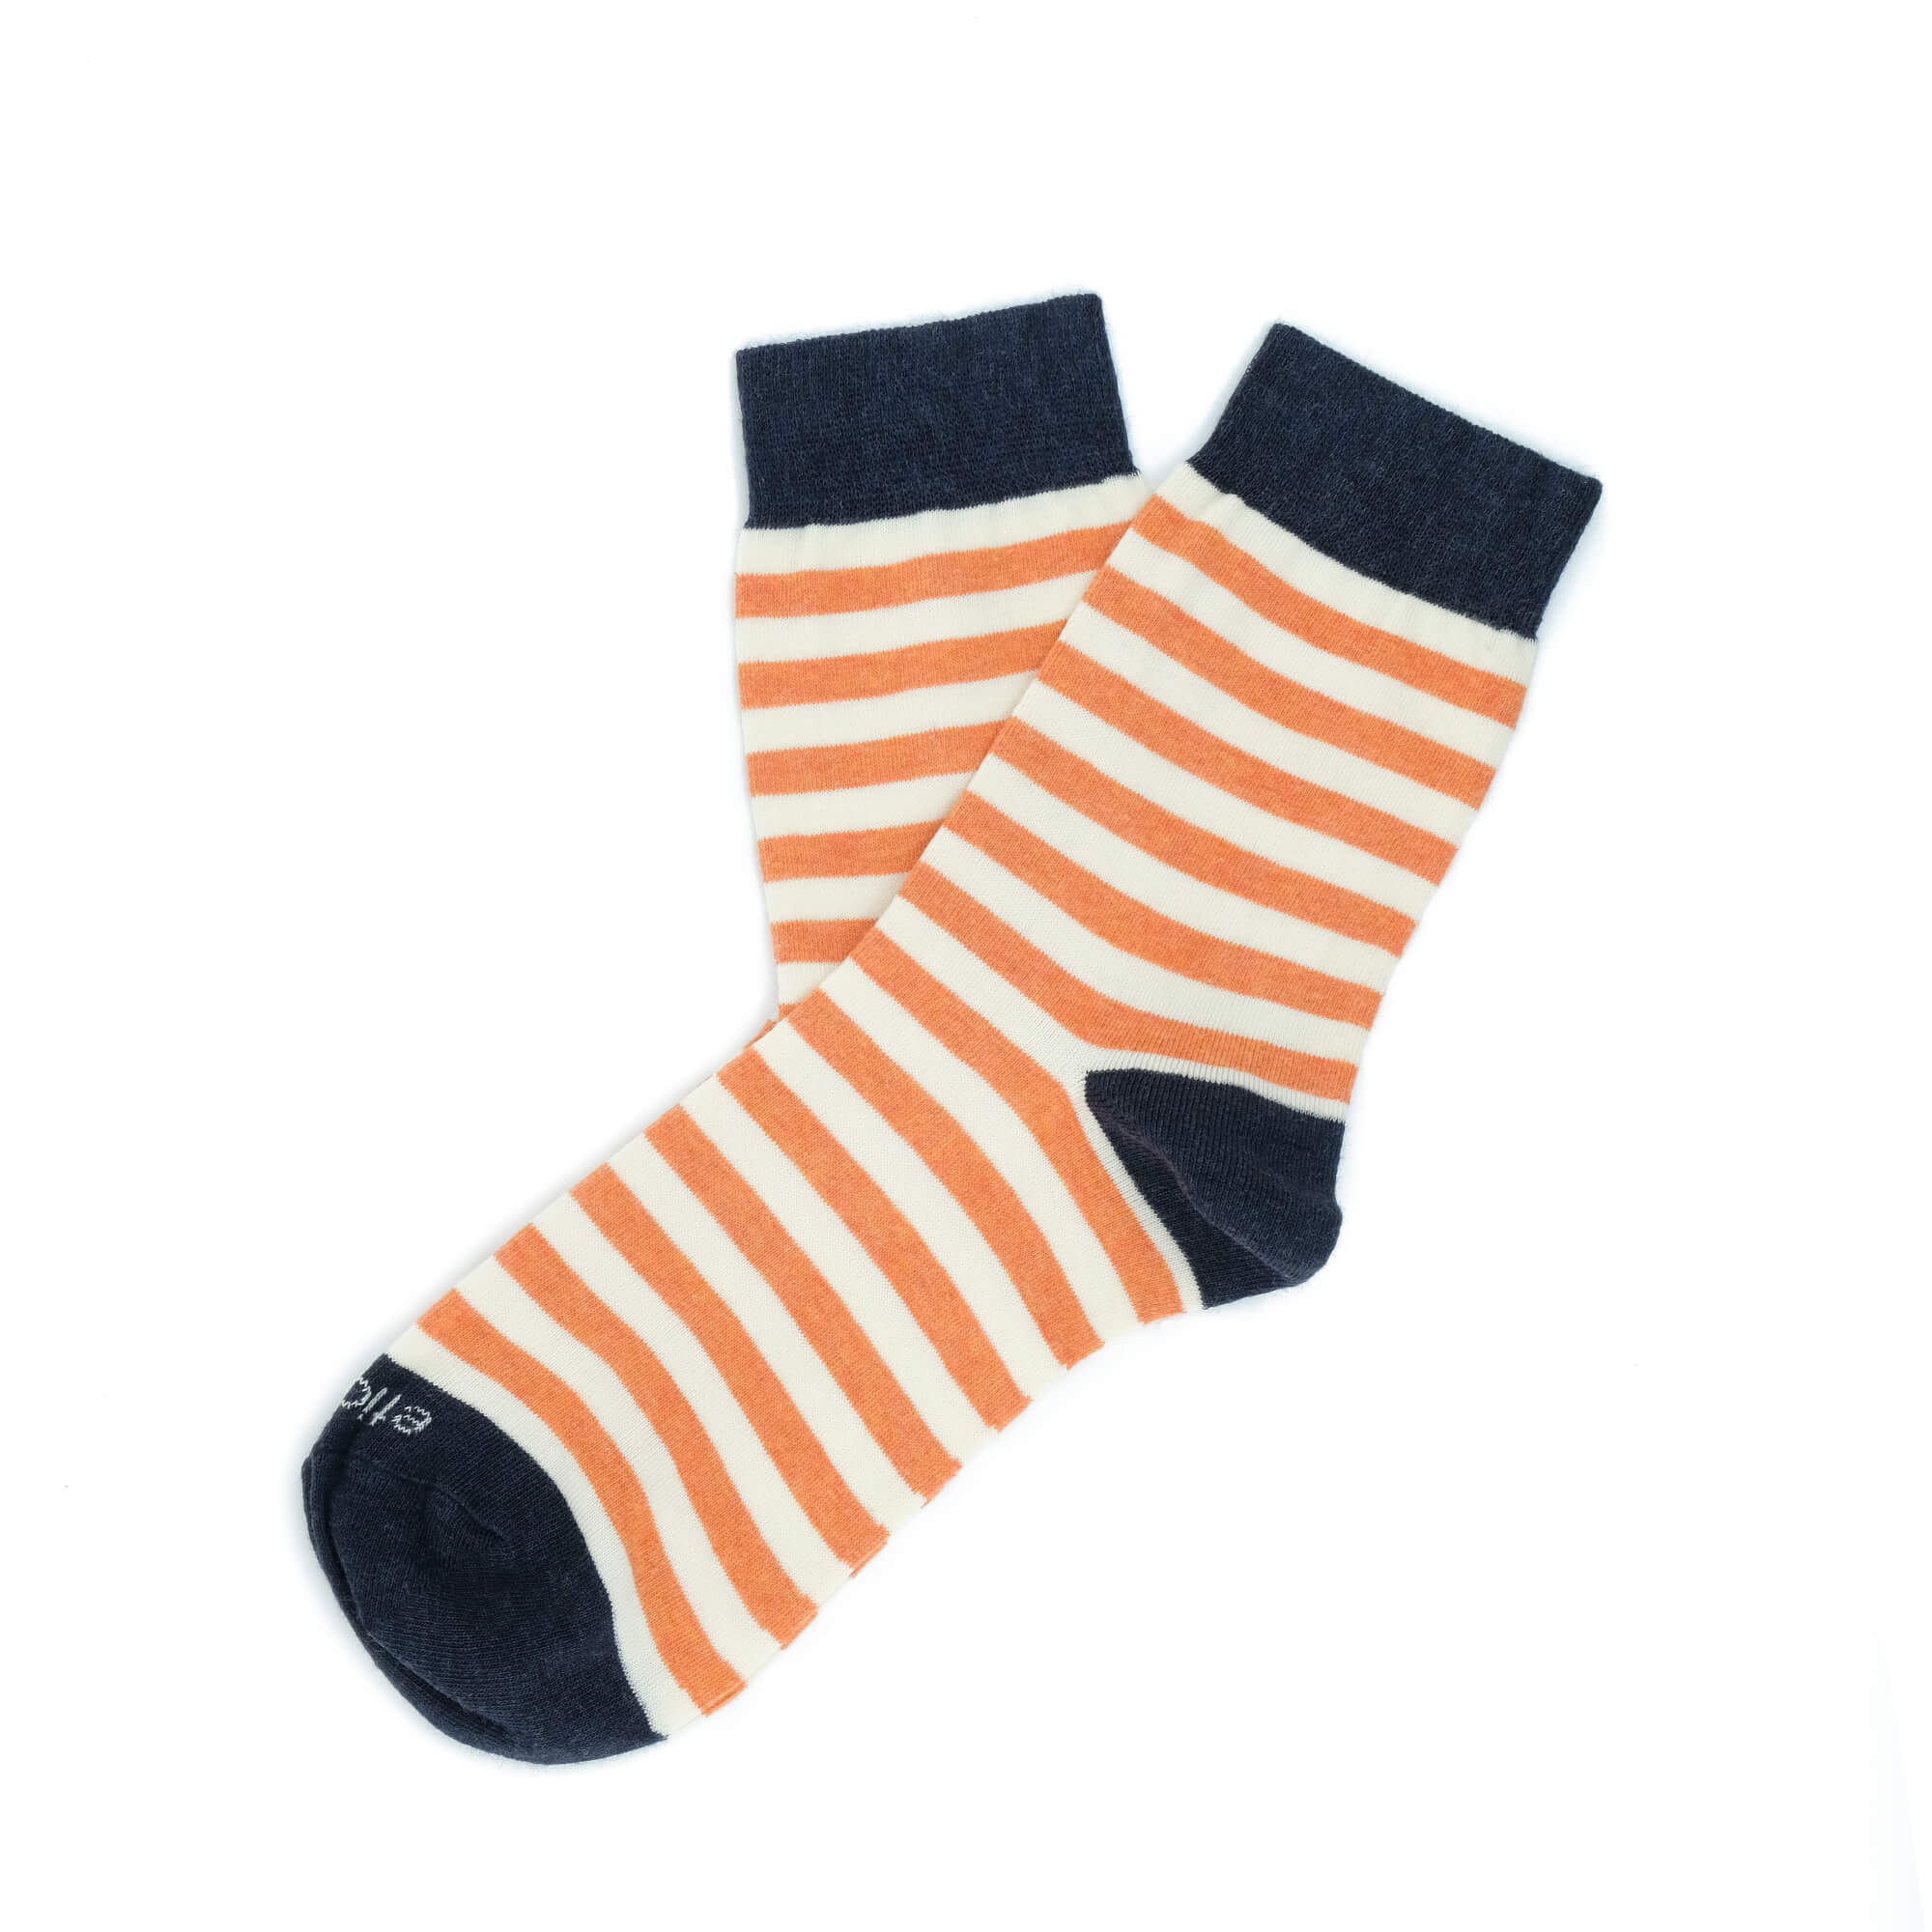 Womens Socks - Abbey Stripes Women's Socks - Orange/Navy⎪Etiquette Clothiers